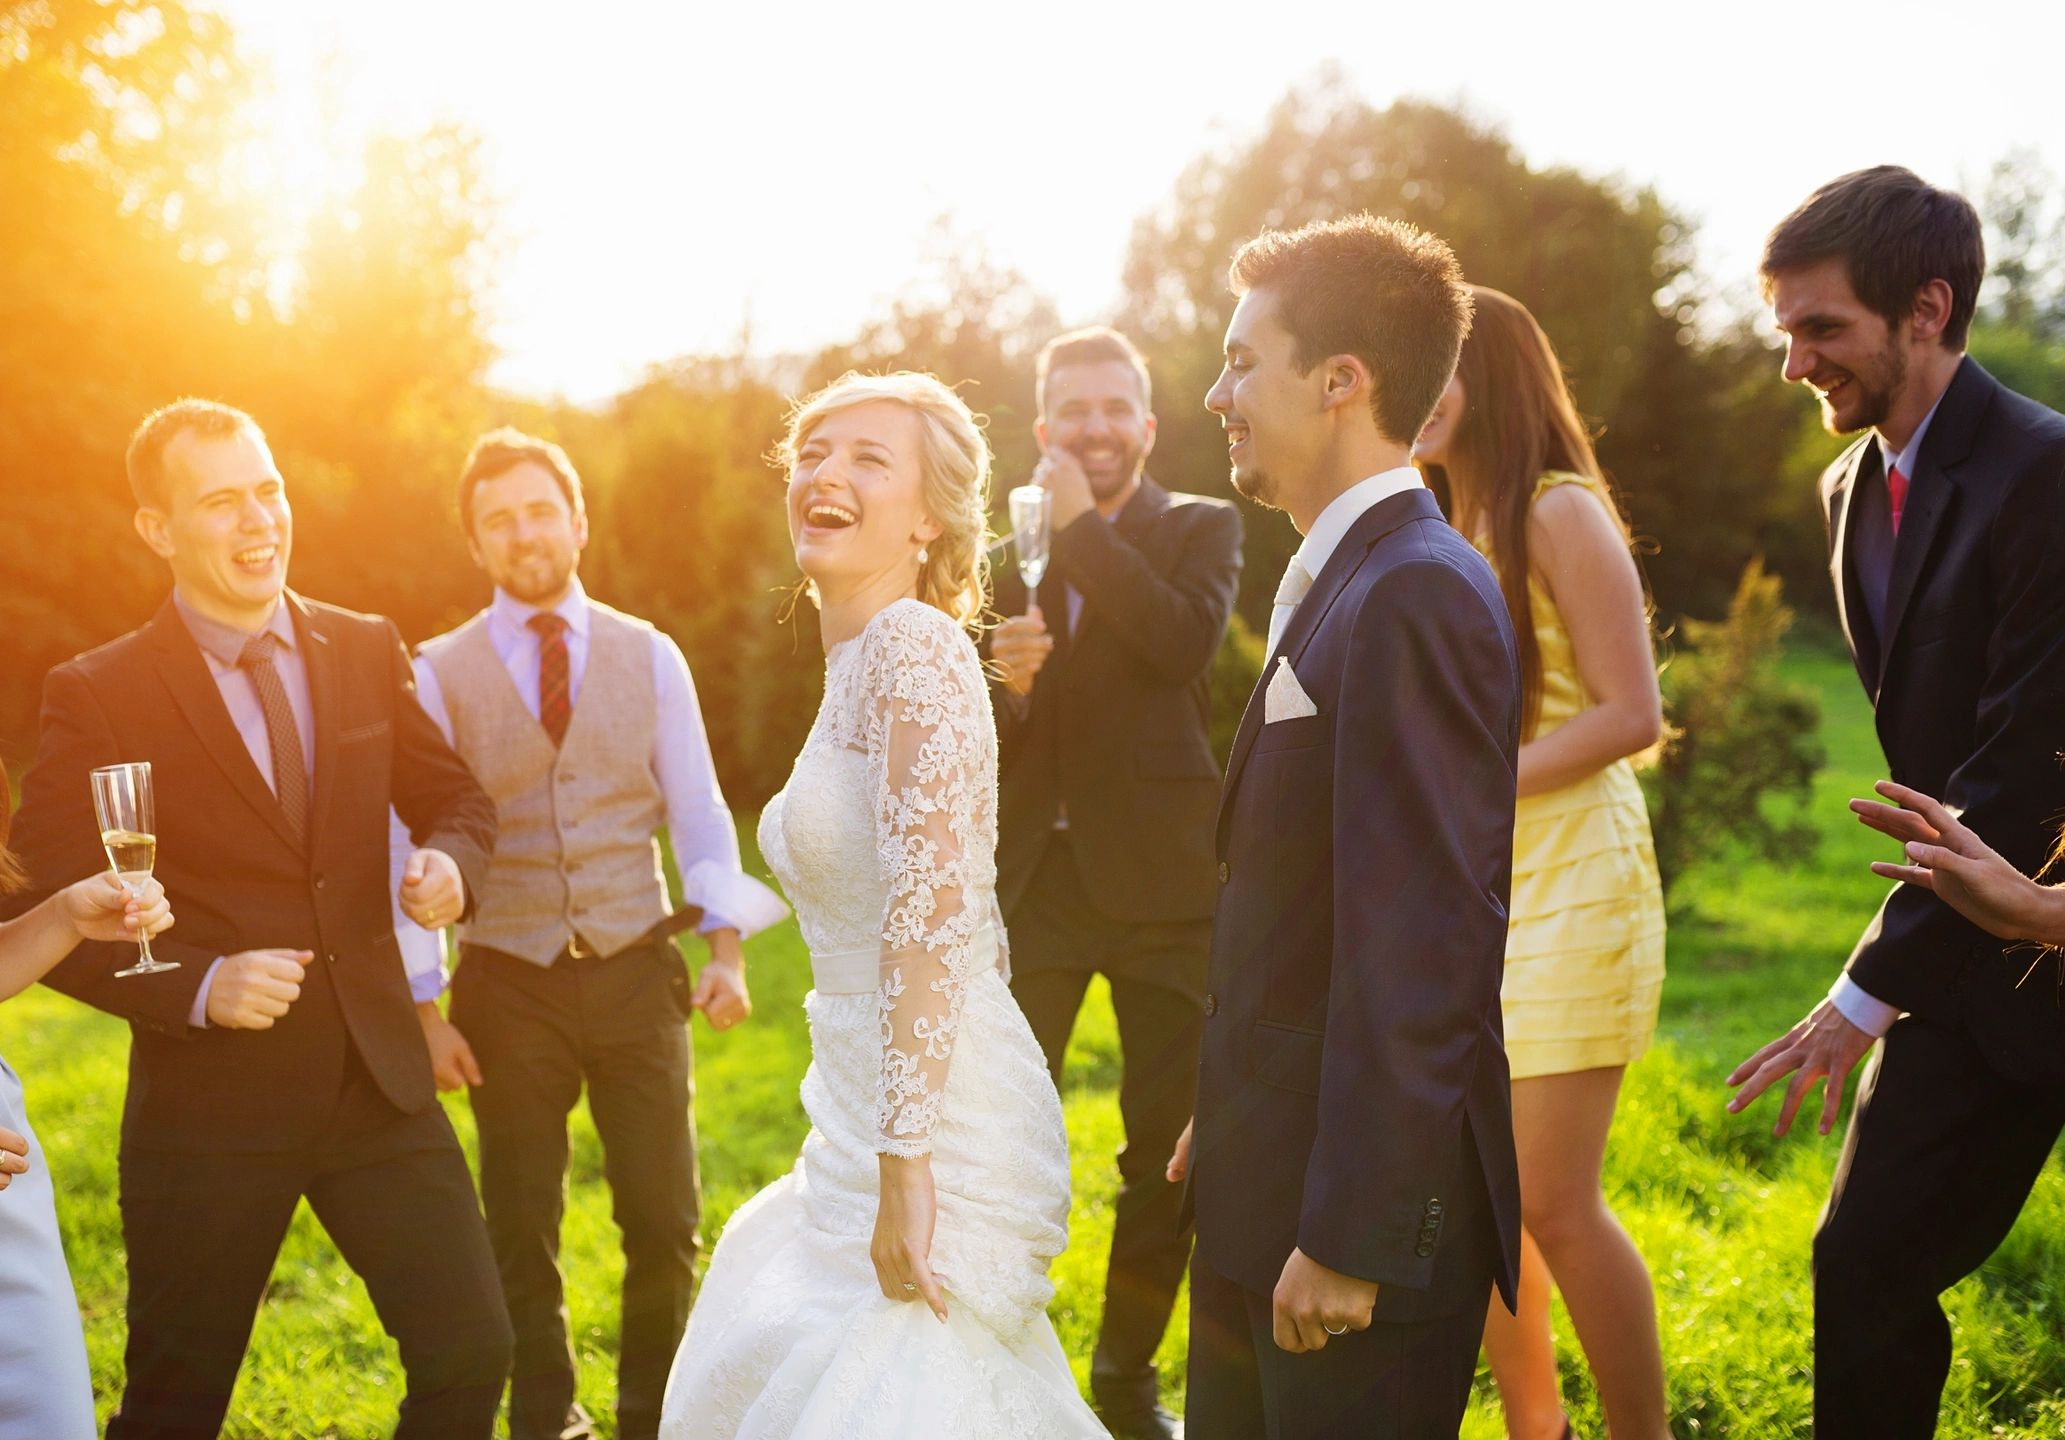 7 Profitable Jobs You Don't Expect At Weddings